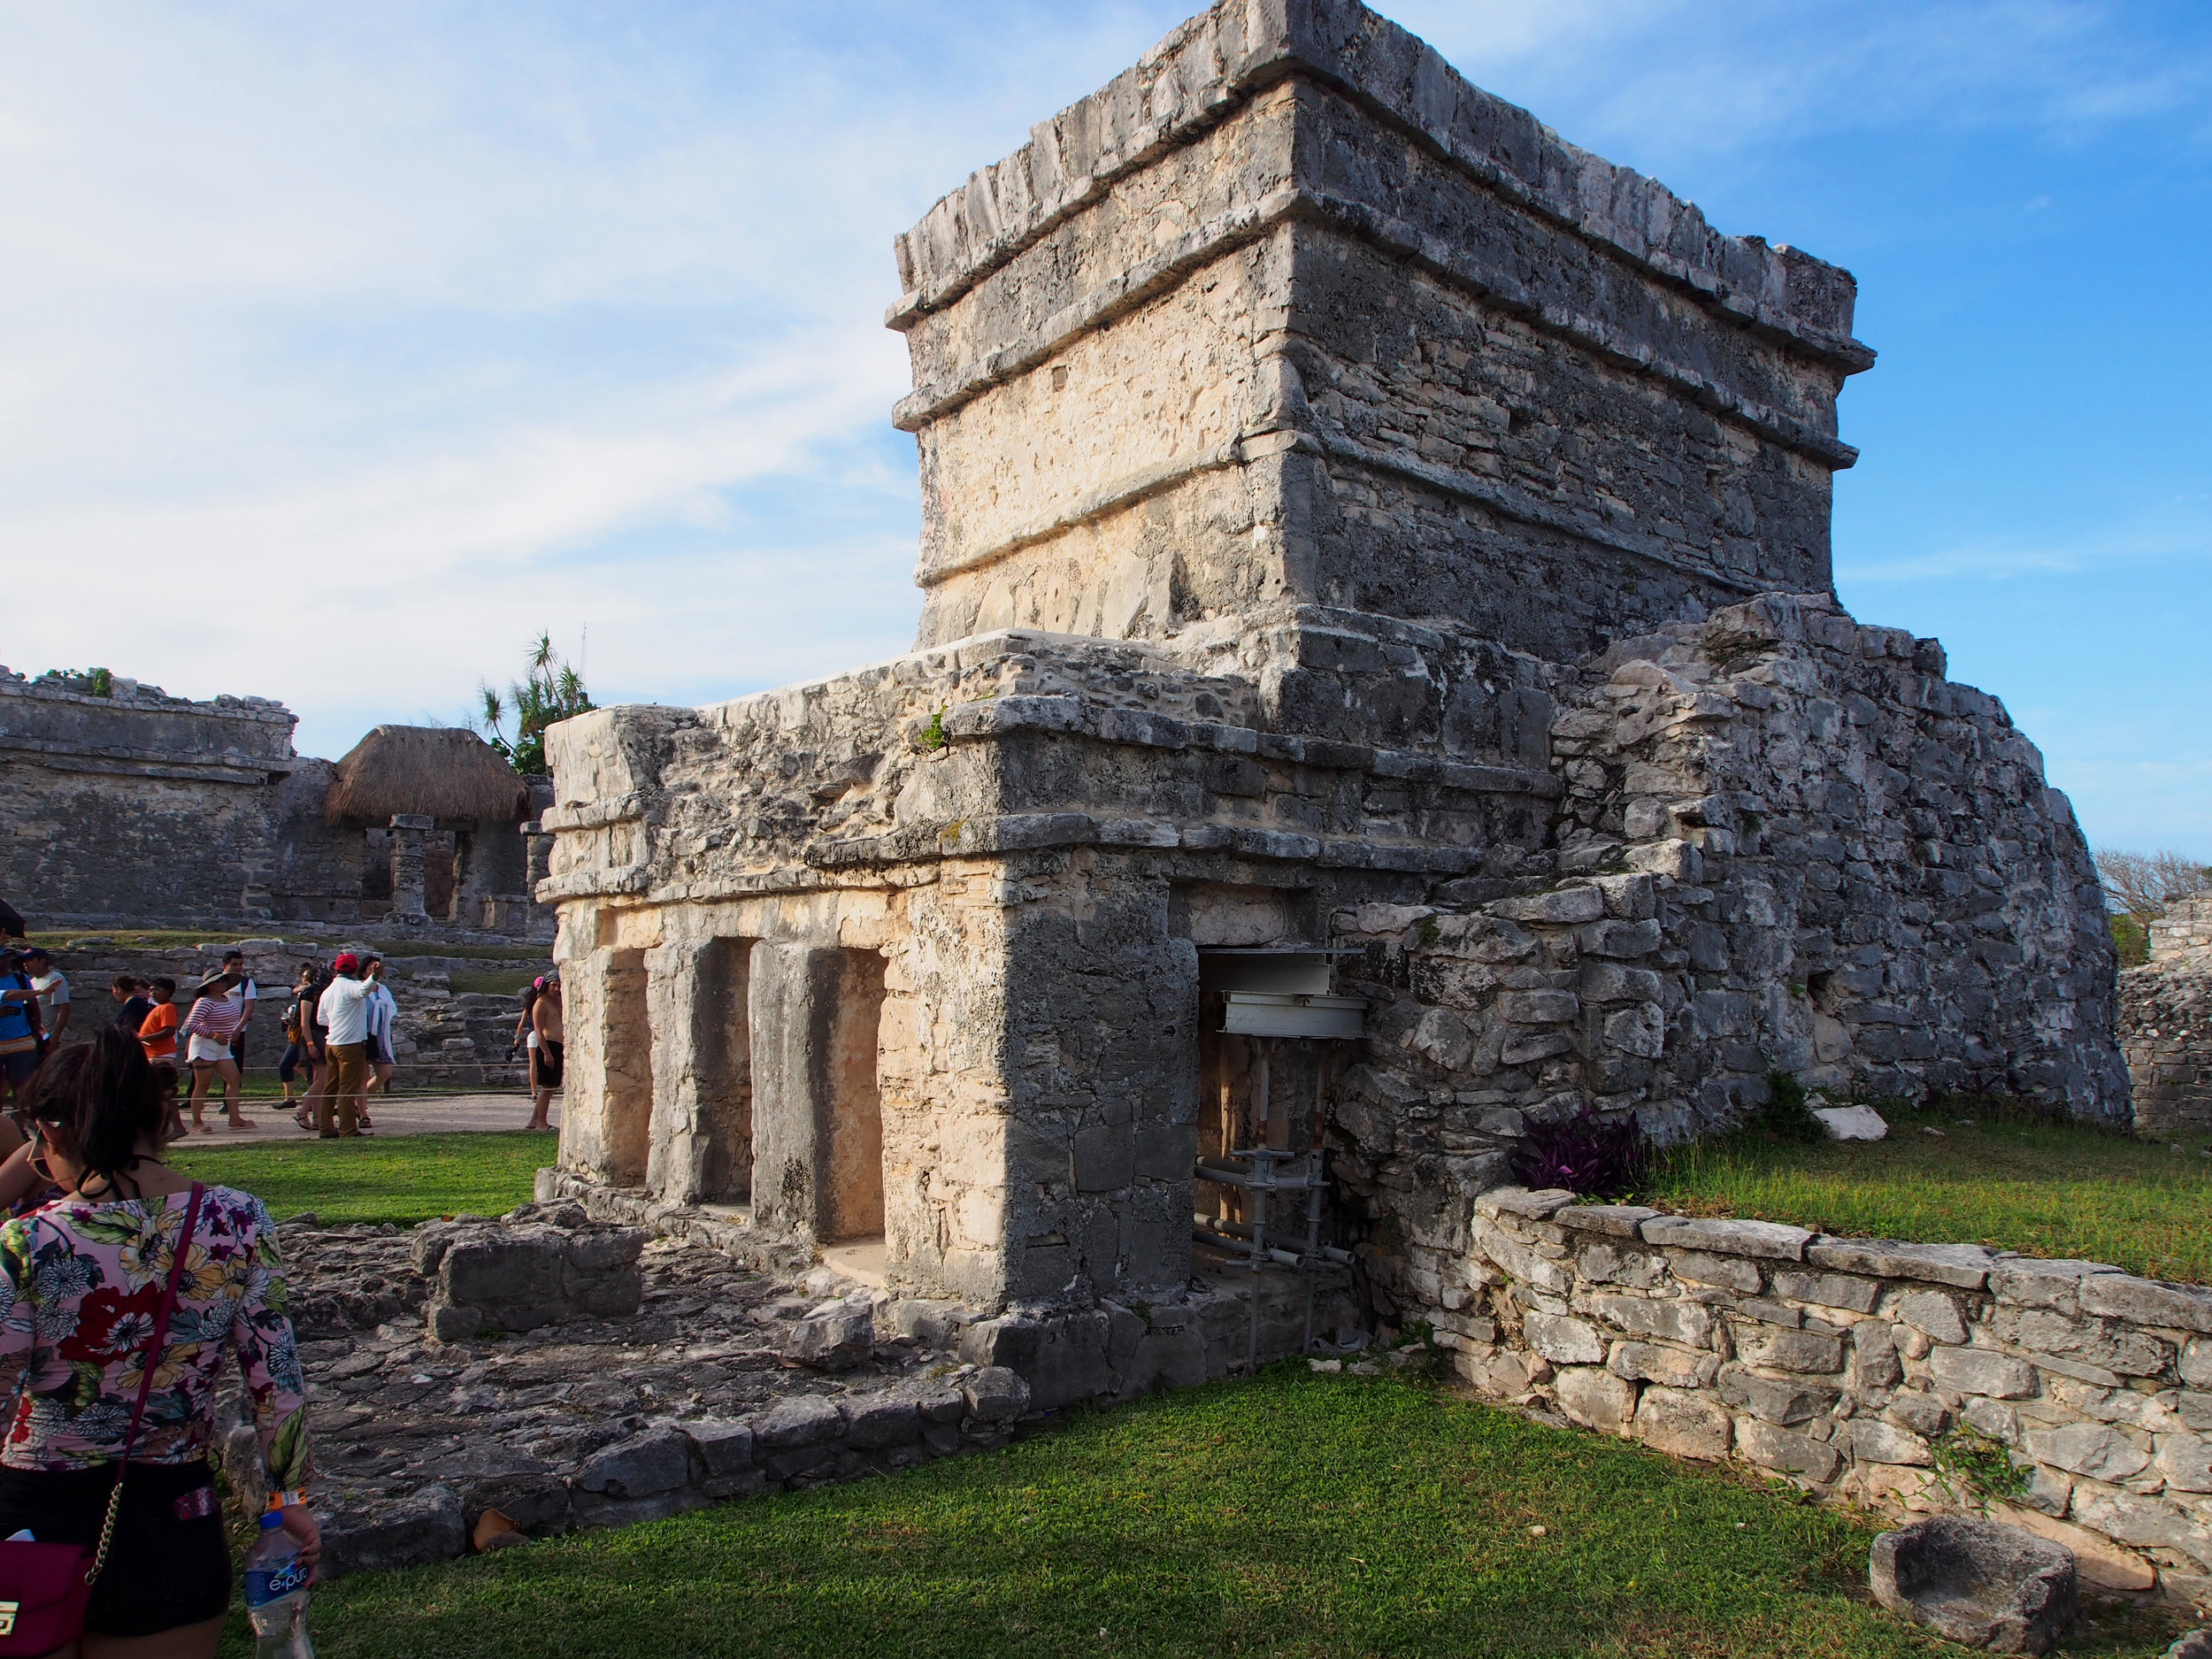 Temple of the Frescoes in Tulum Mexico